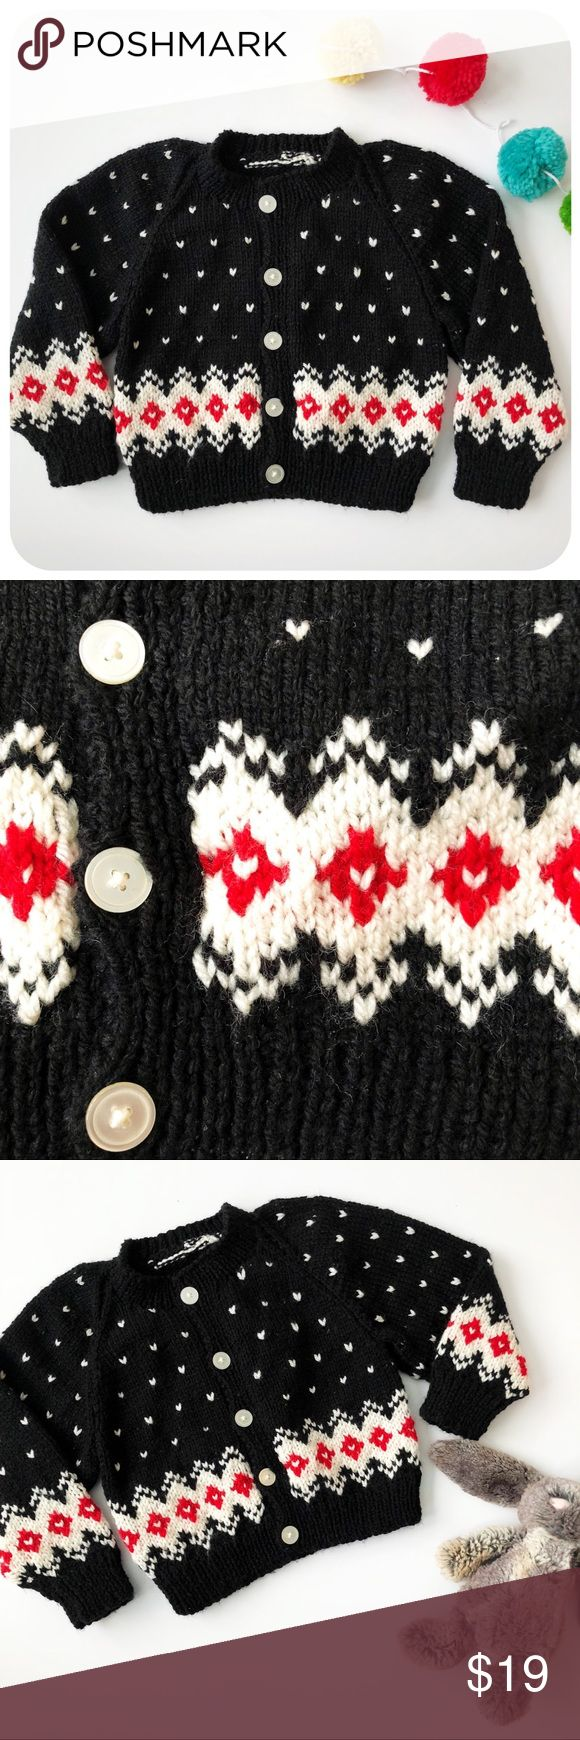 {{ Vintage }} Handmade Valentine's Day Cardigan Handmade Vintage Valentine's Day Knit Cardigan  Black chevron knit with white mini 'hearts'. Bottom white band with red hearts. Button front.   No size. Estimated to fit 18-24 months. Vintage Shirts & Tops Sweaters